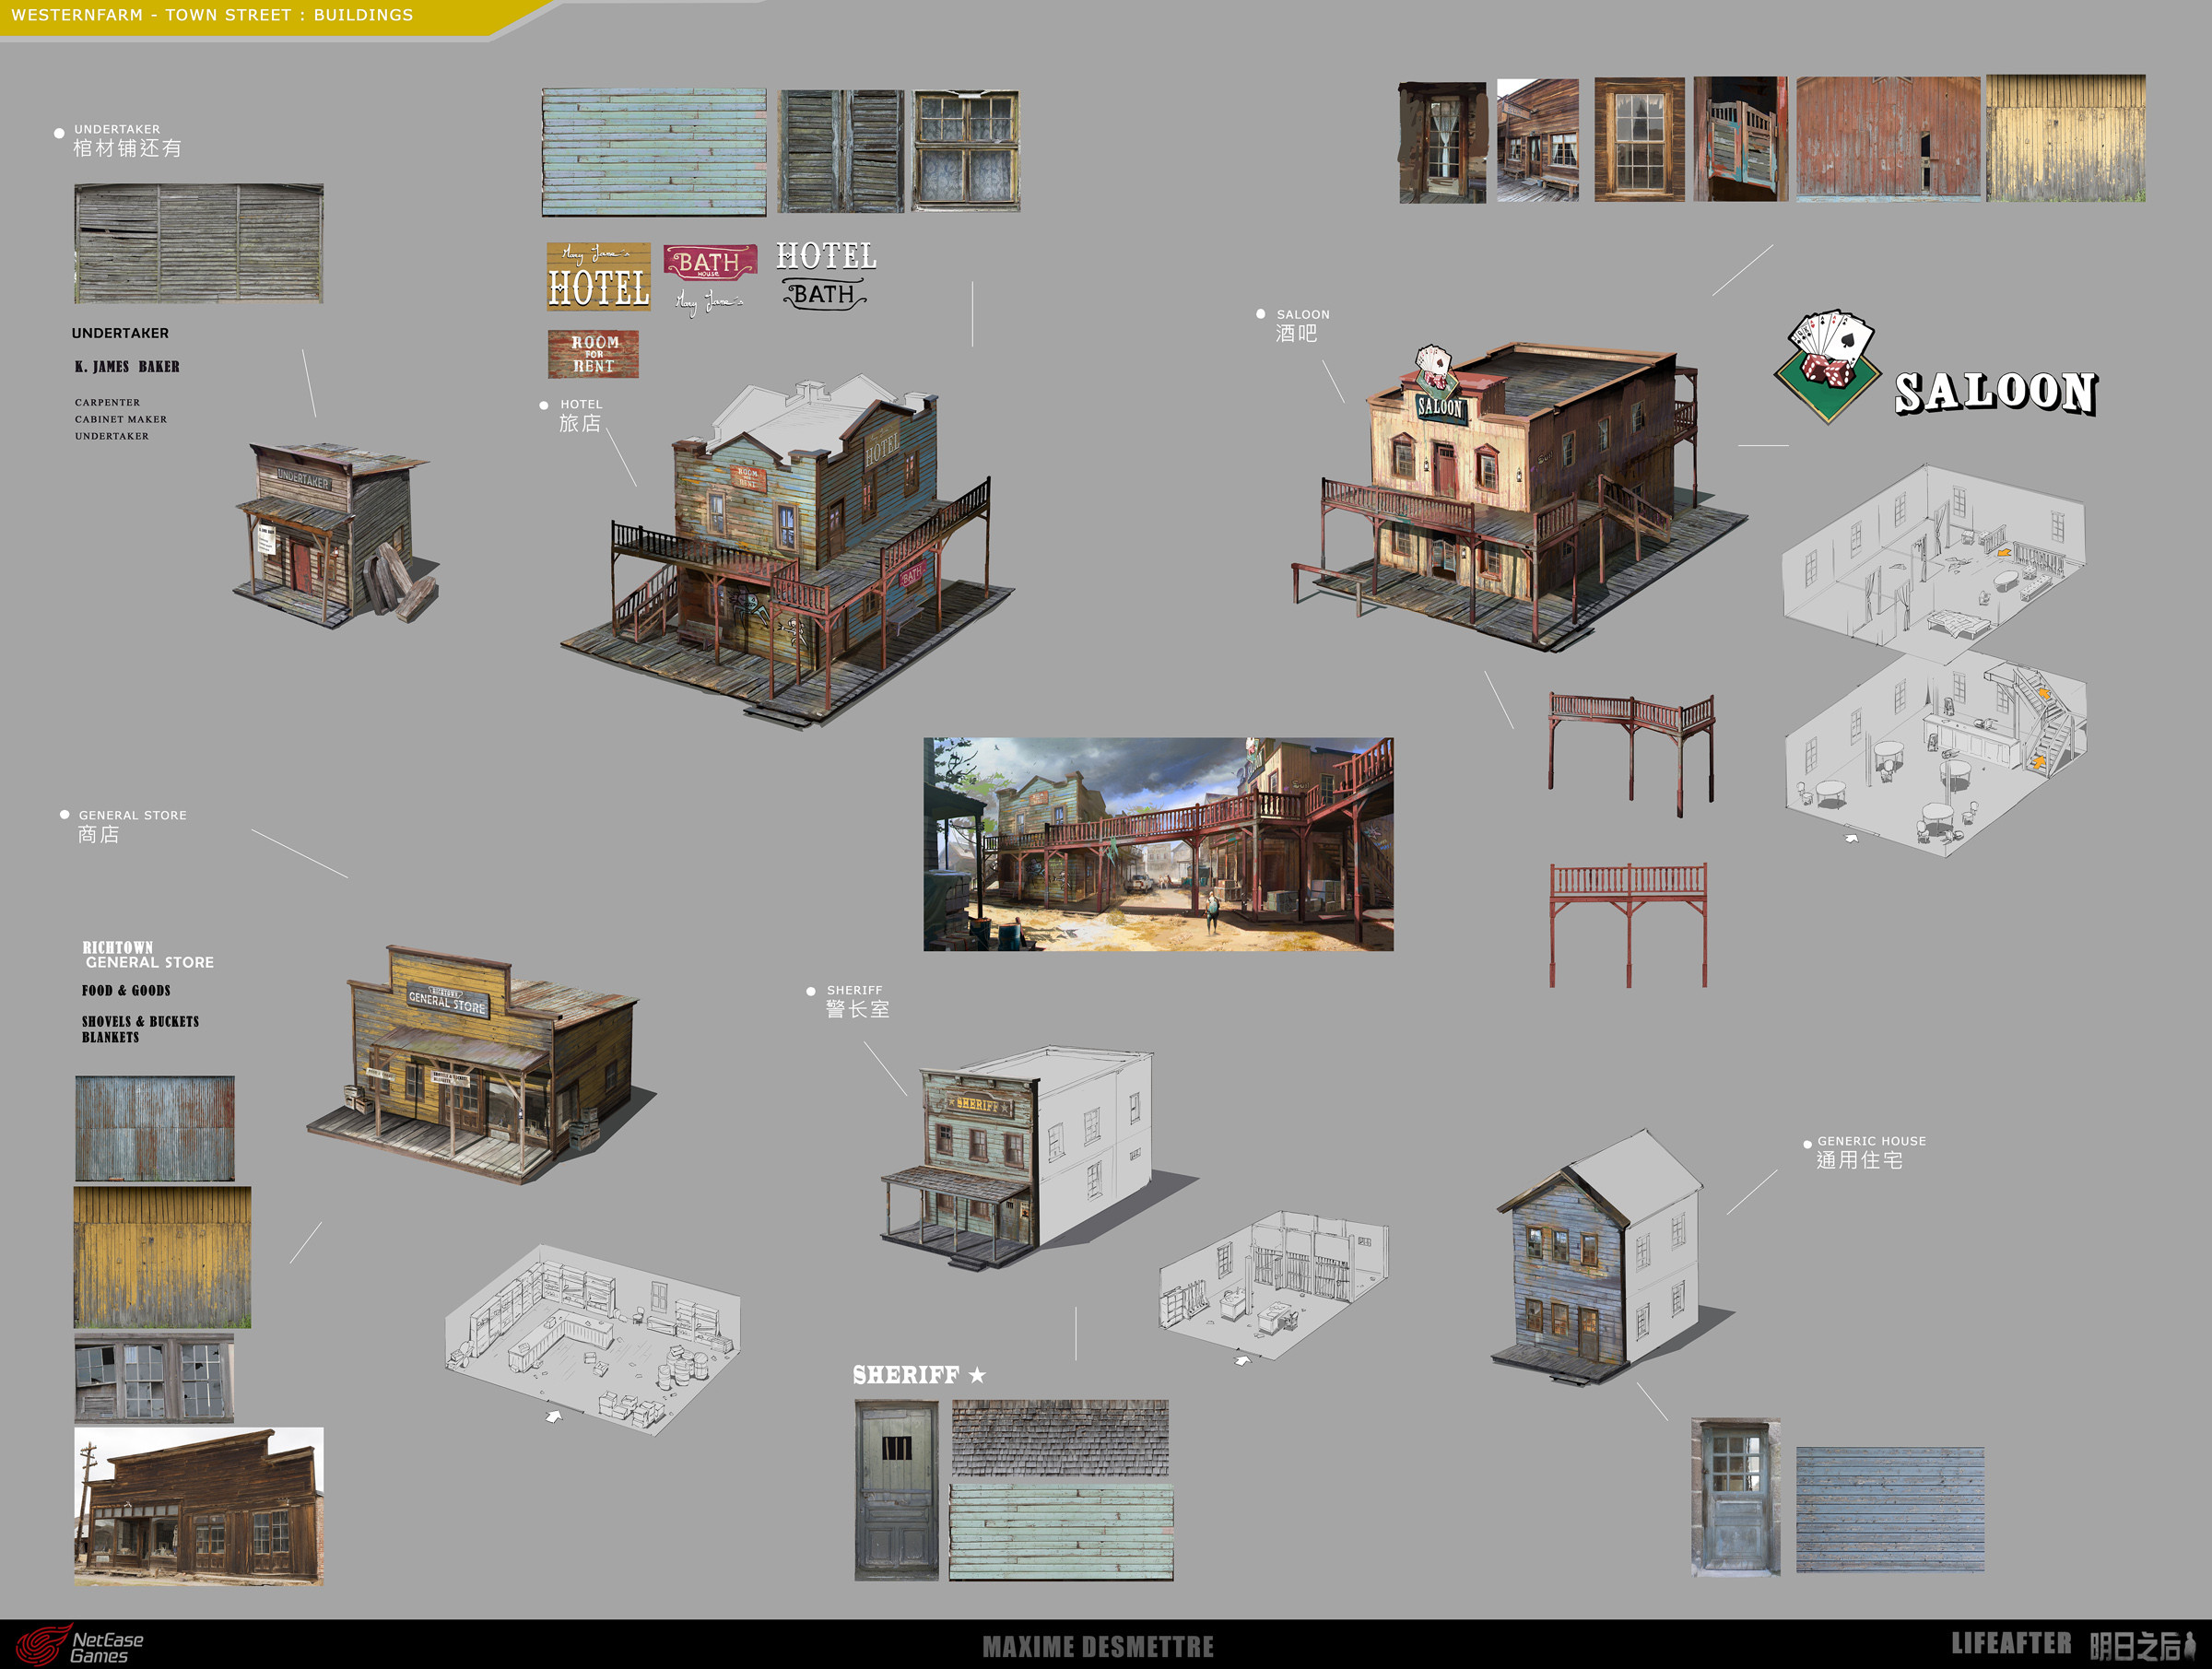 Life After - Western Town Street - Props Details Concept art (2019)